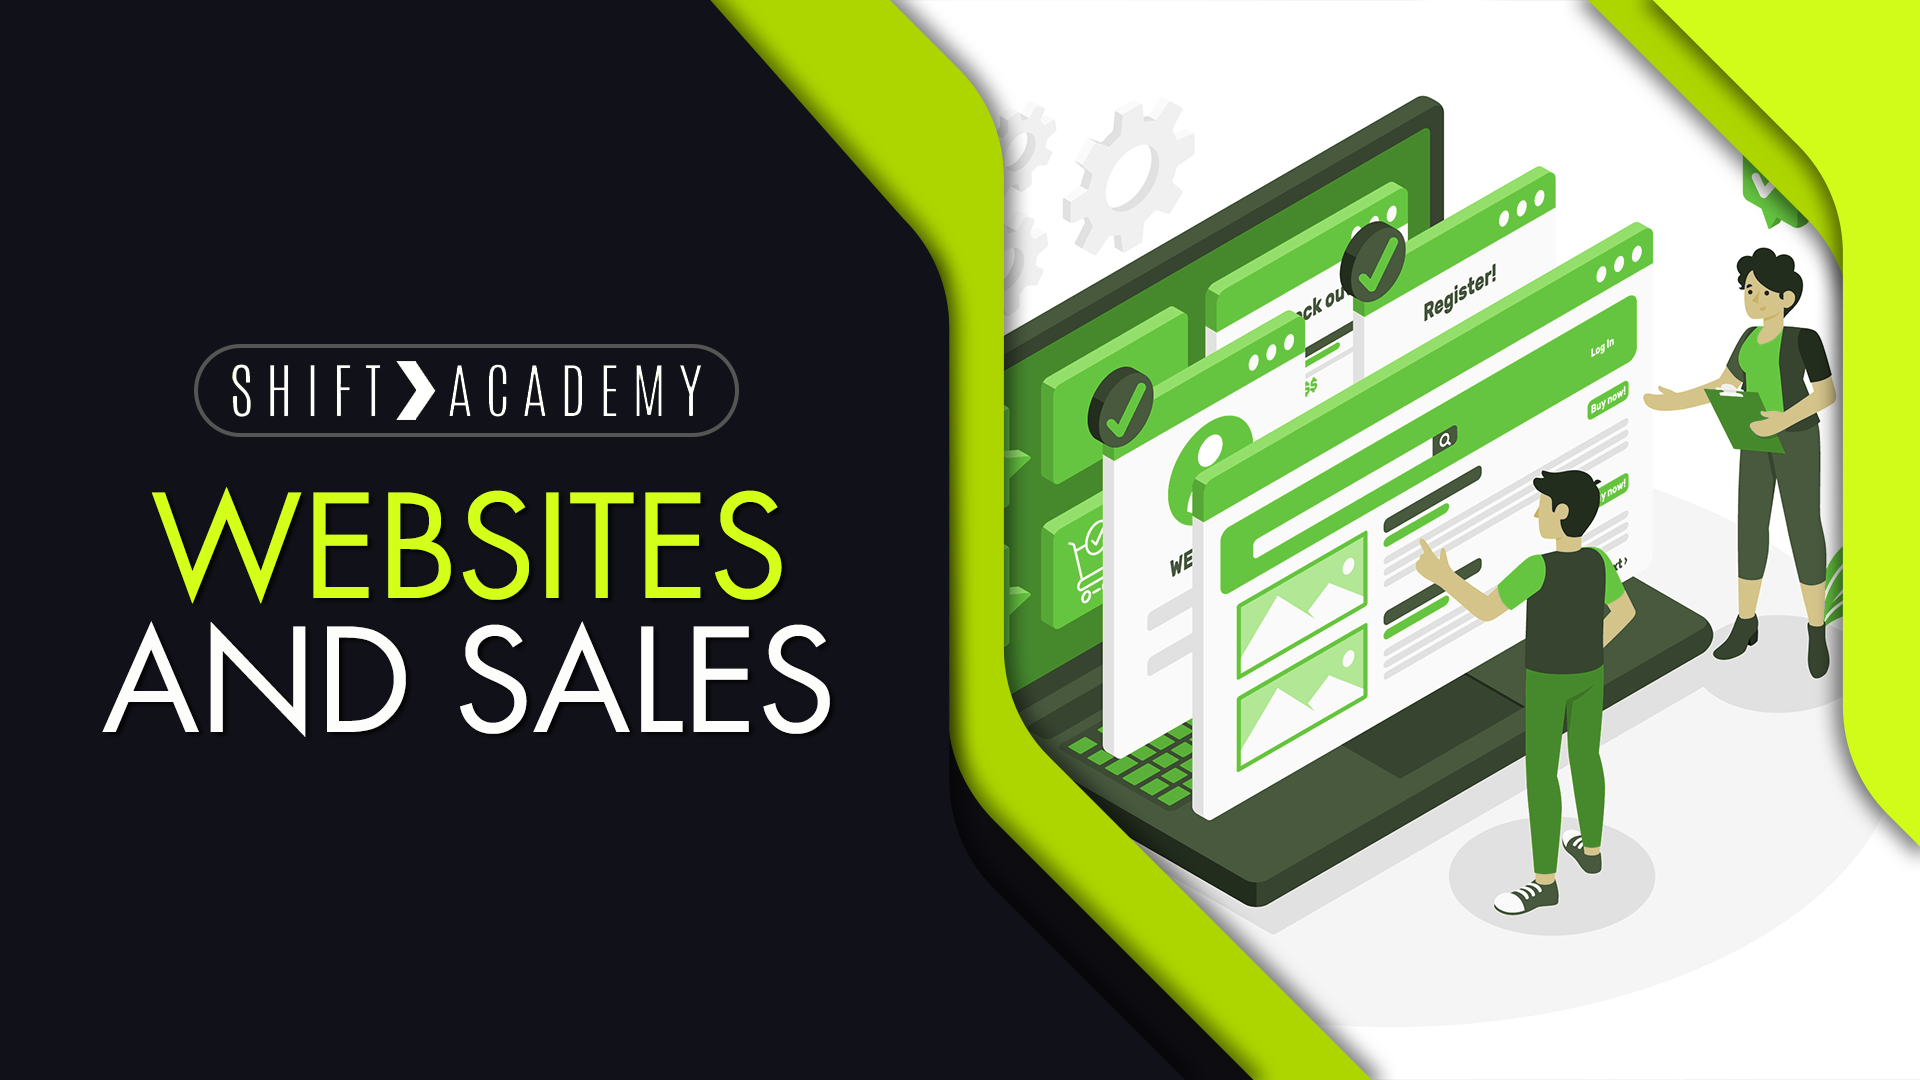 Websites and Sales